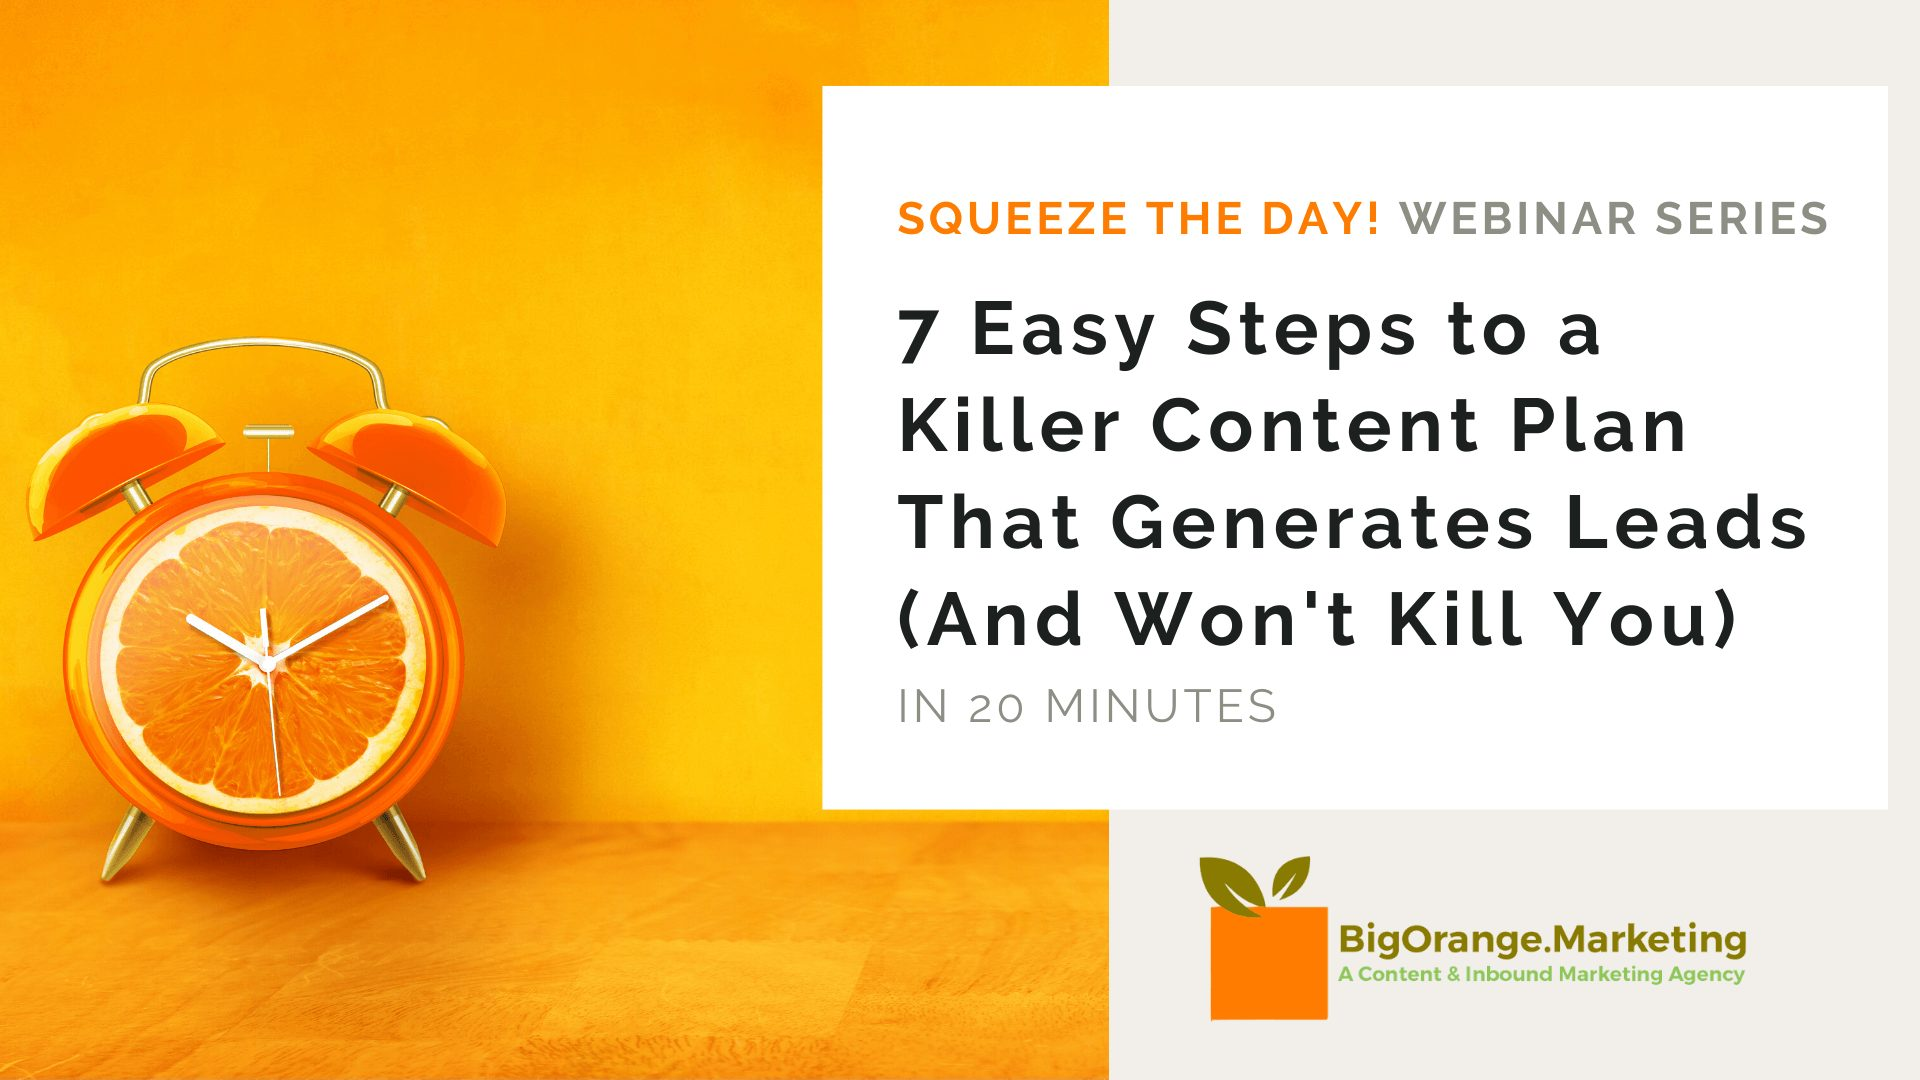 Squeeze the Day Webinar_ 7 Steps to a Killer Content Plan that Generates Leads (and is managable)